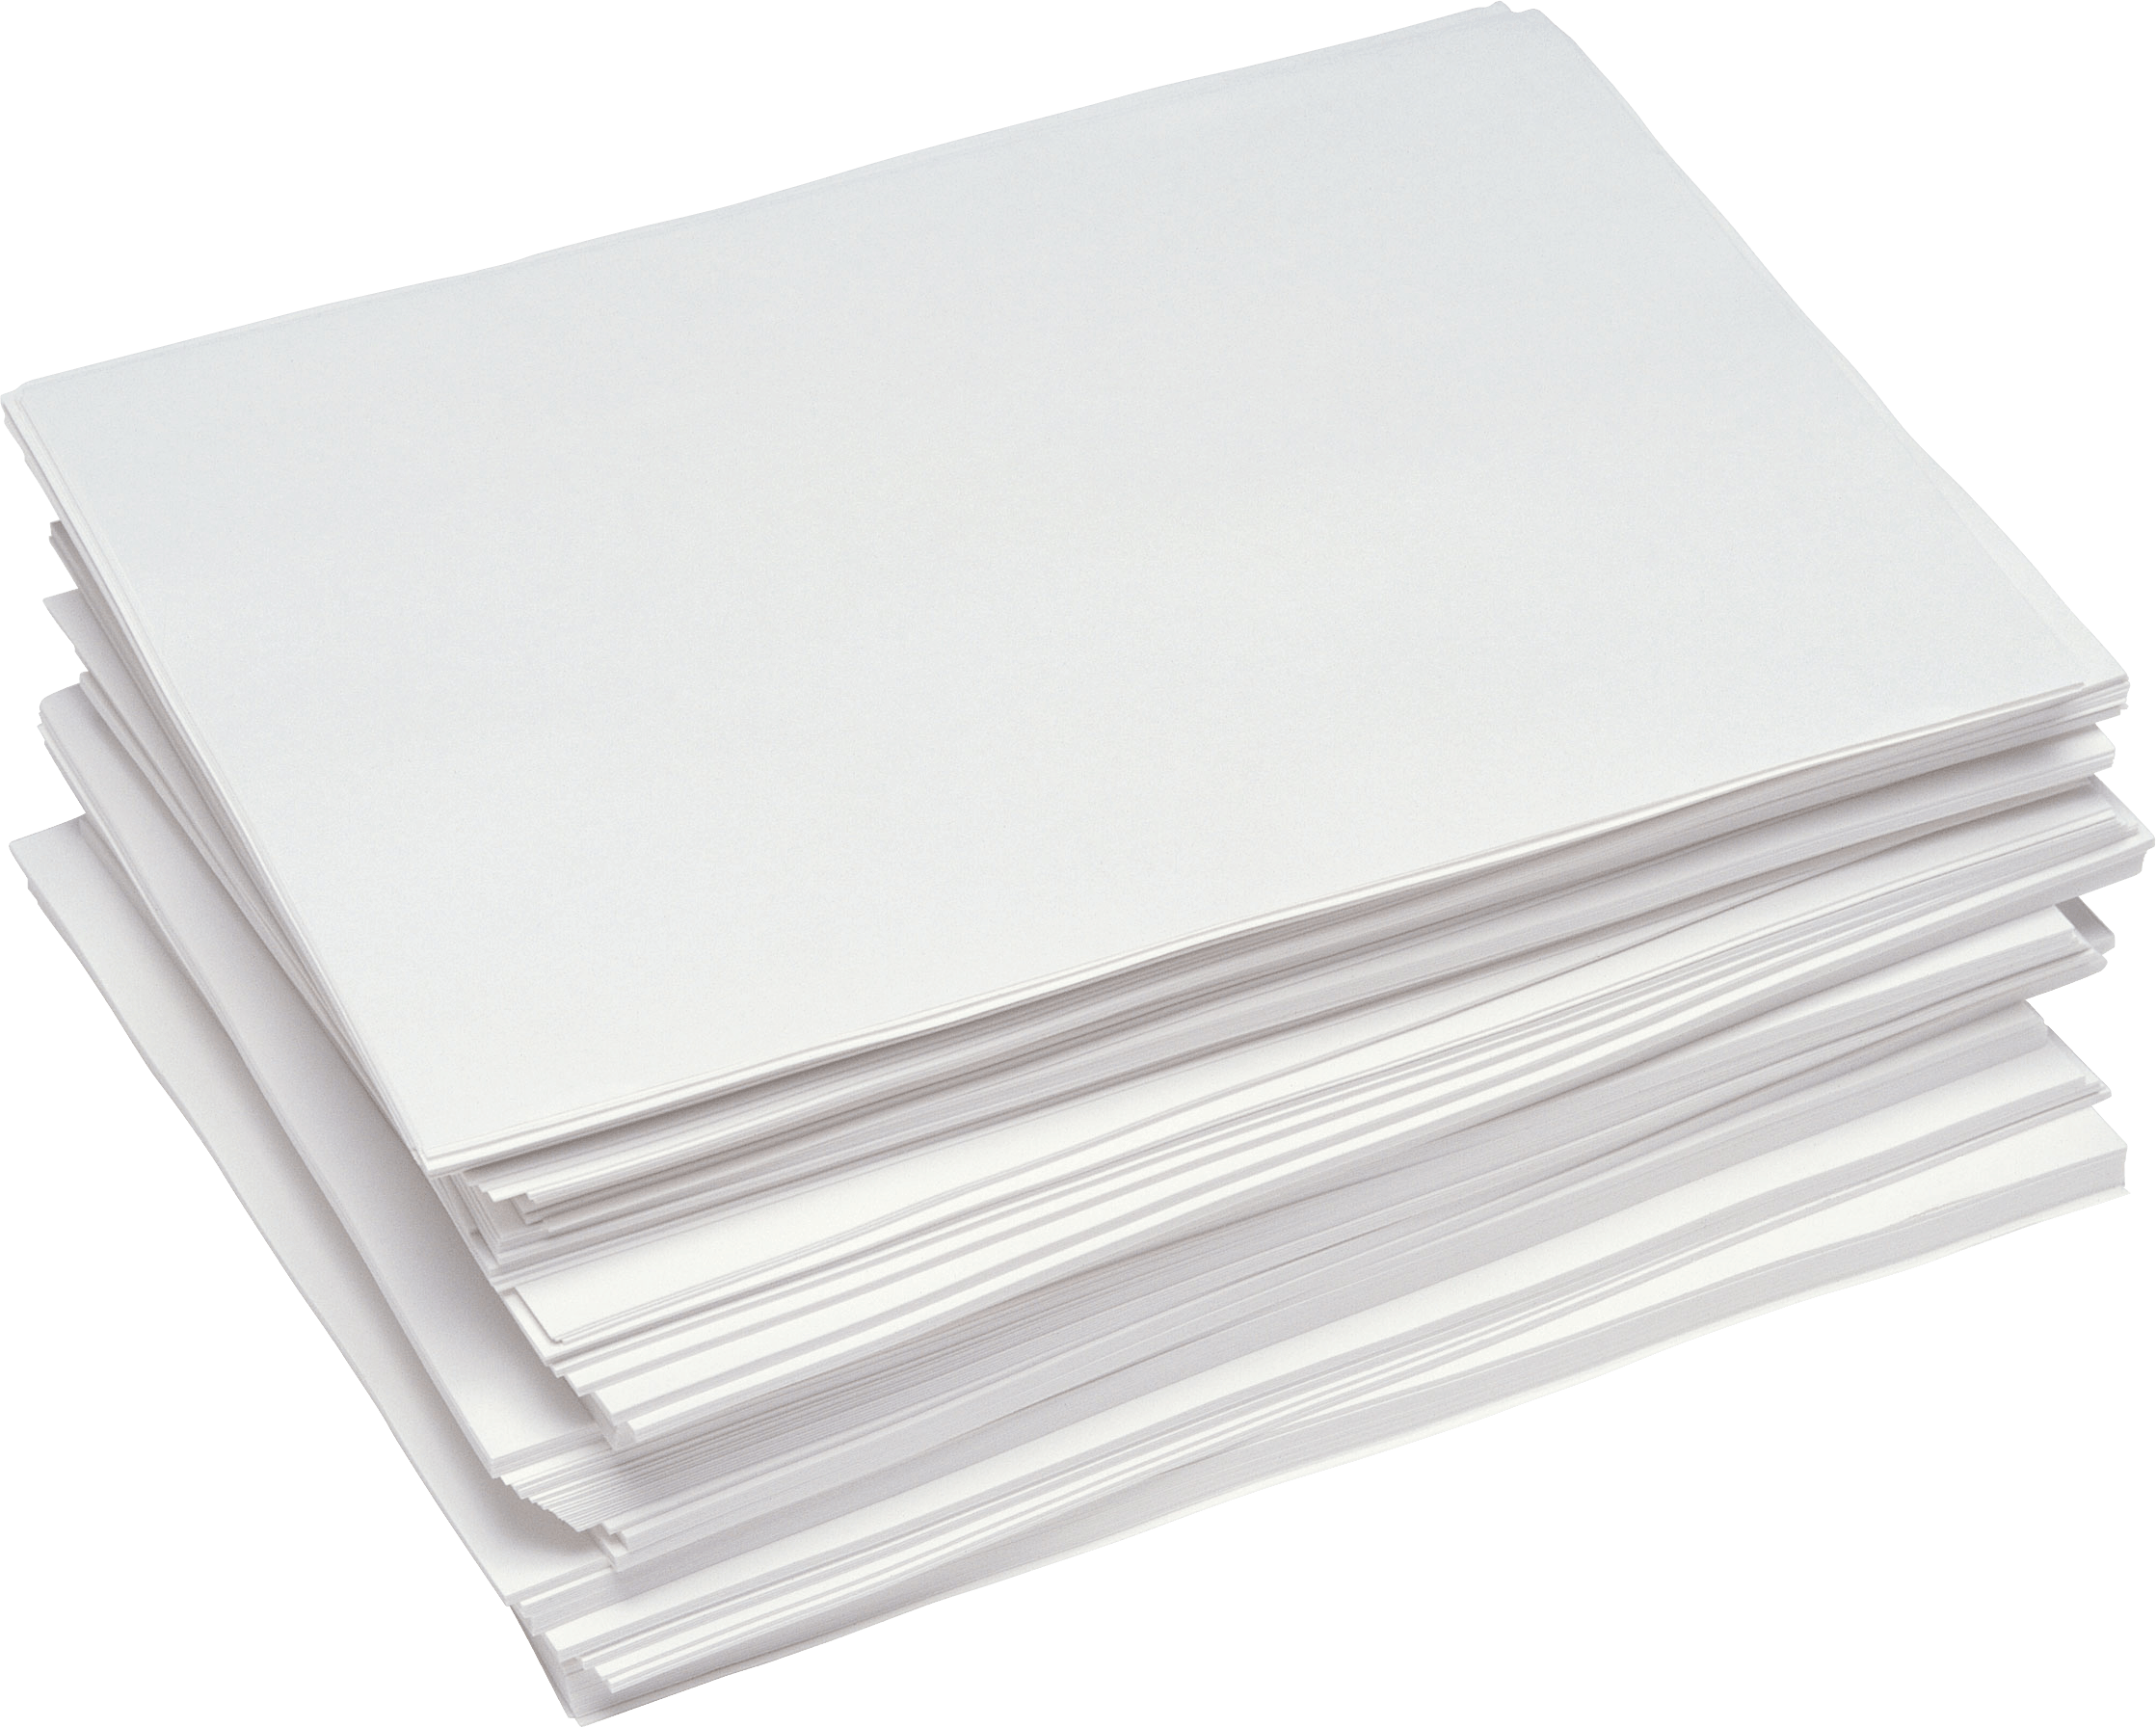 stack of paper transparent png - stickpng